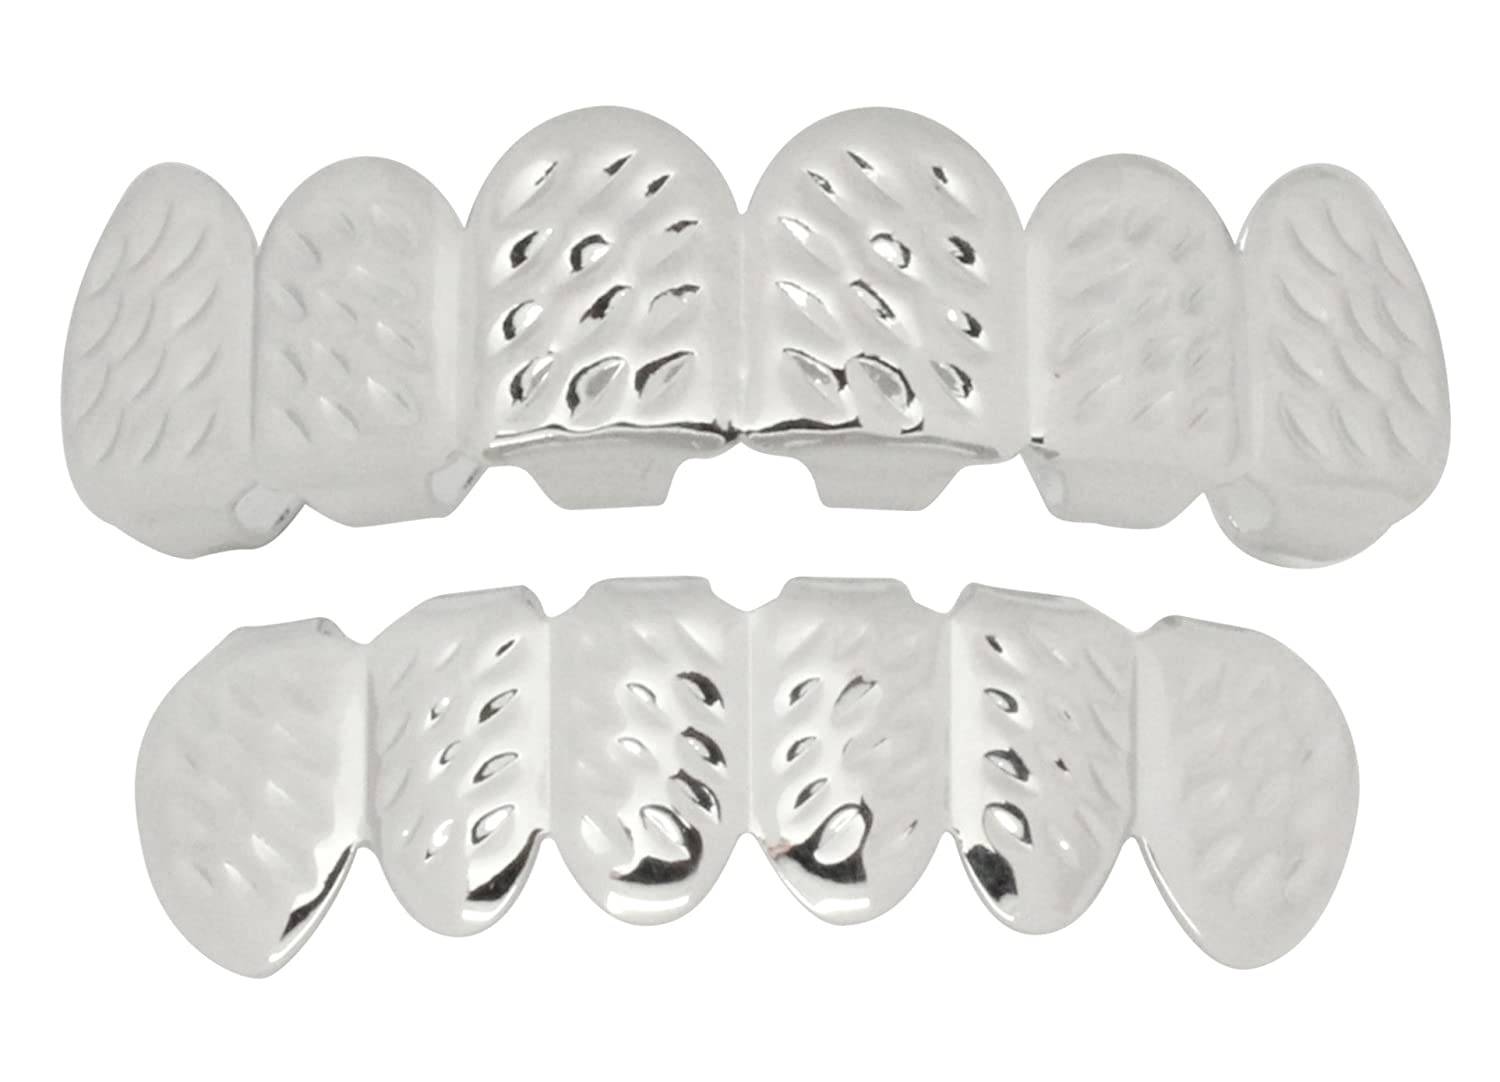 NewAgeBling Diamond Cut Custom Fit Grills Silver Tone Top Bottom Hip Hop Teeth Grillz Best Grillz 201